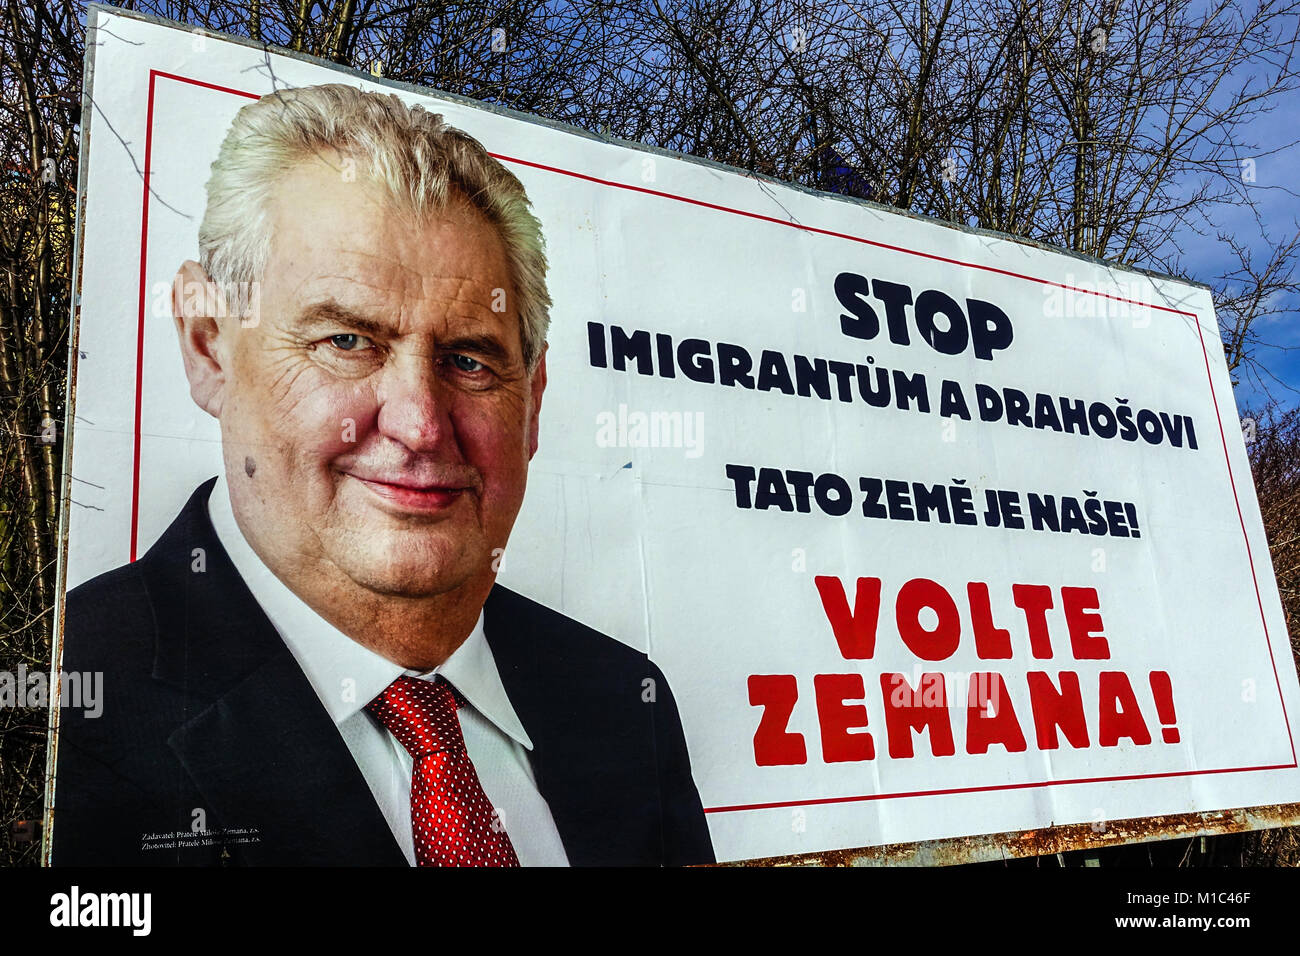 Czech elections, the Presidential campaign by Milos Zeman. Stop the immigrants and Drahos. This country is ours. - Stock Image